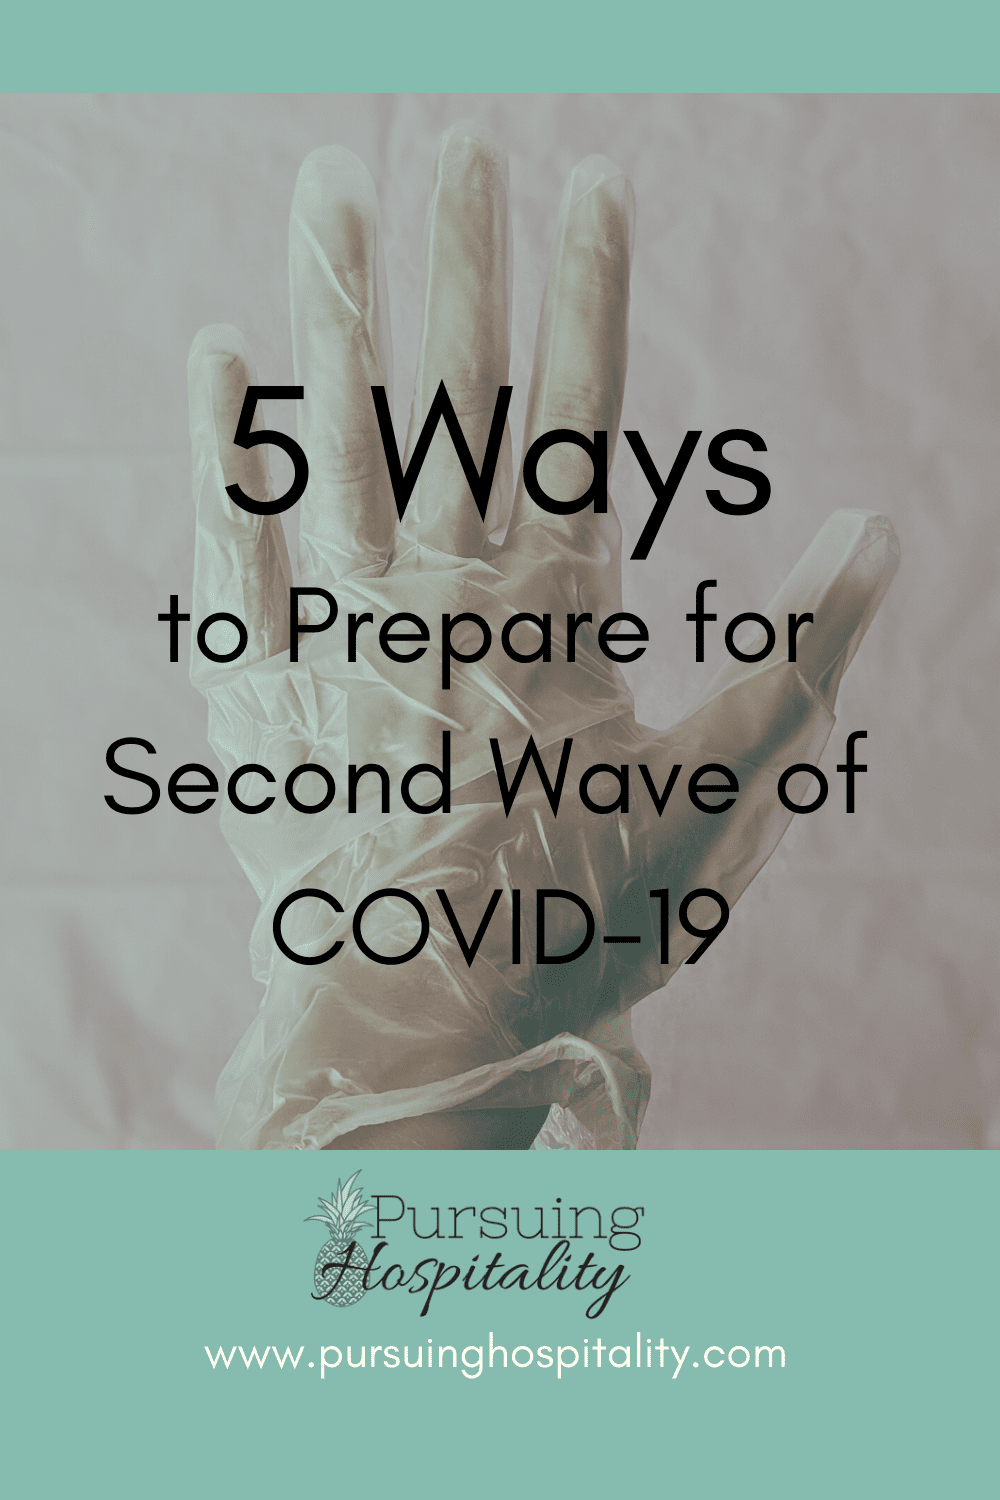 5 ways to prepare for second wave of COVID-19